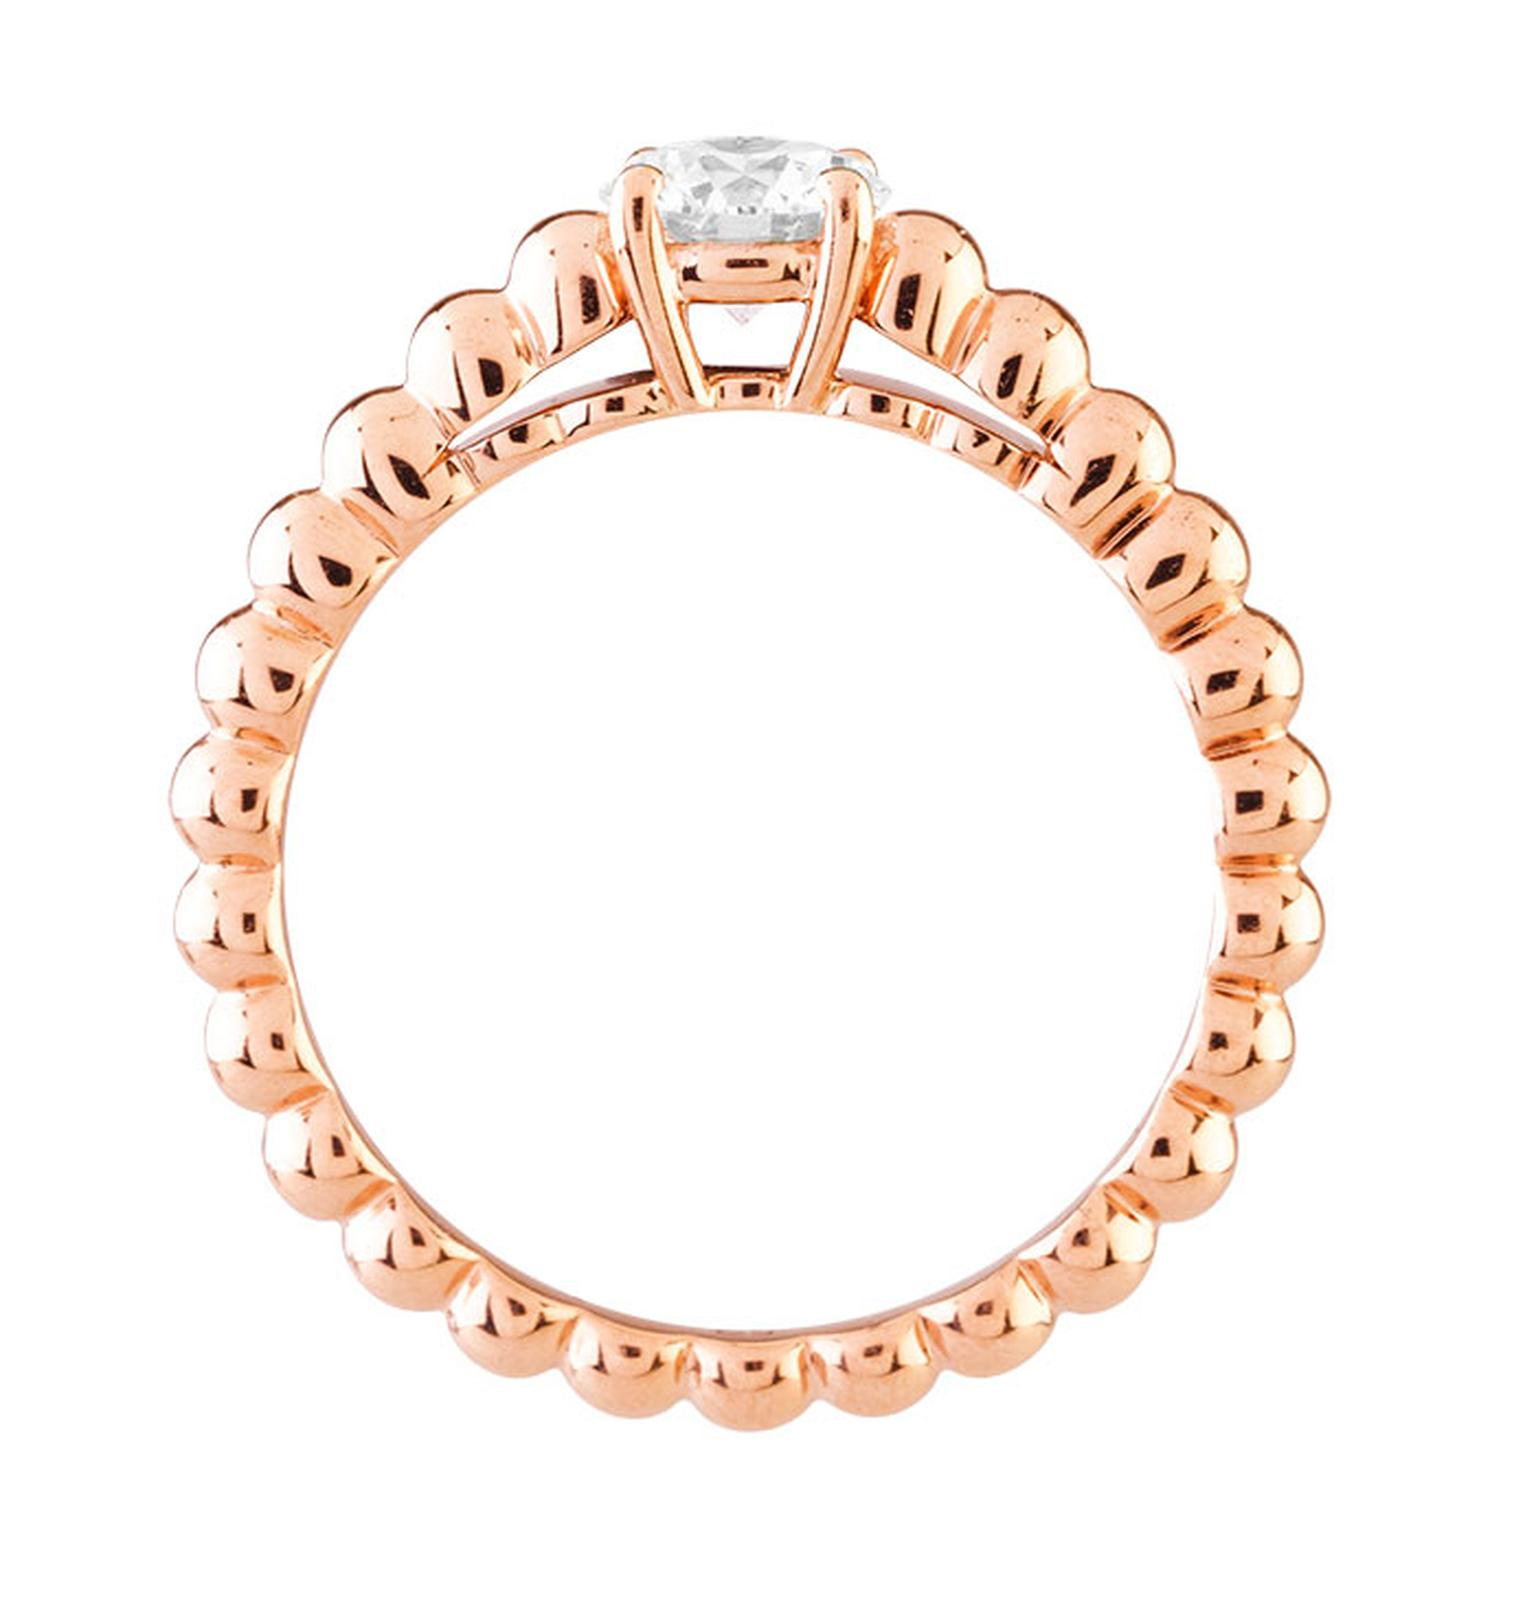 Egt-Ring-VCA-Solitaires-Perlee-Or-rose-0.5-EVVS2-bis